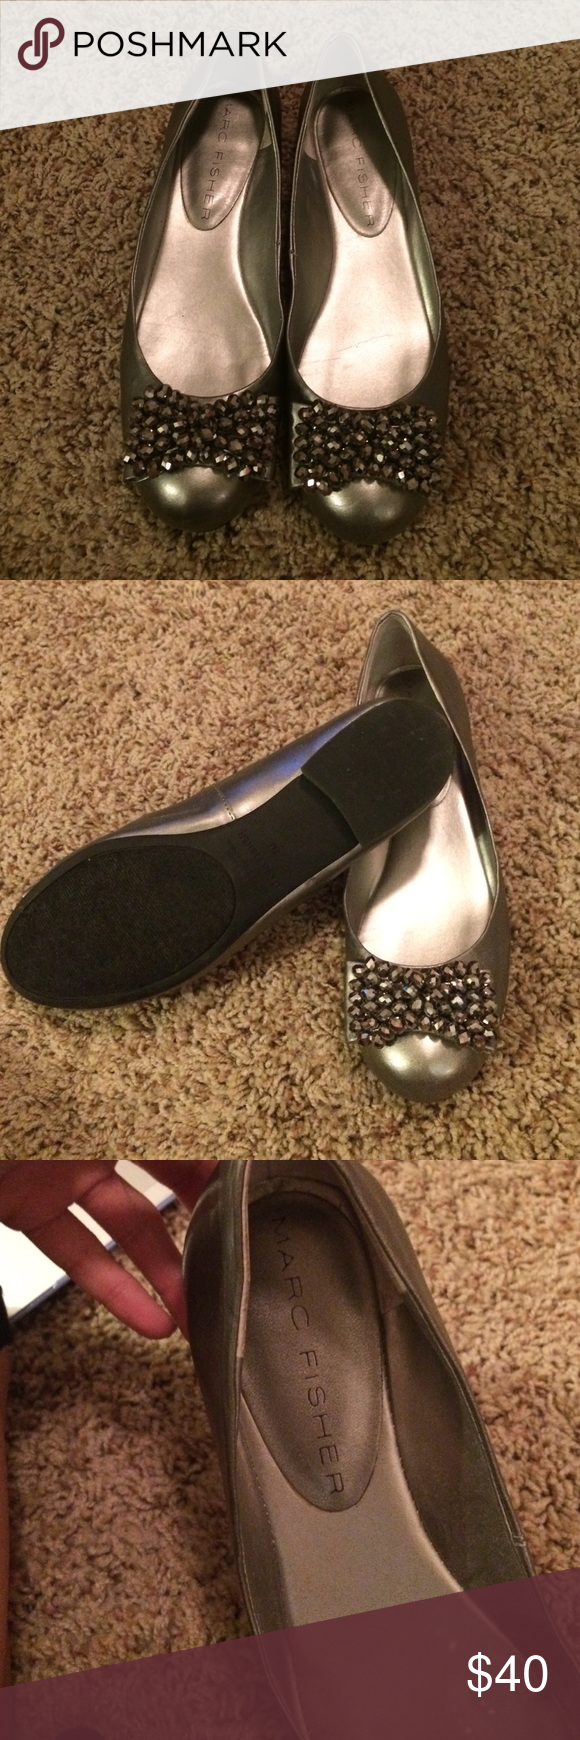 Marc Fisher silver flats So cute on! Little wear but can't really tell. Marc Fisher Shoes Flats & Loafers